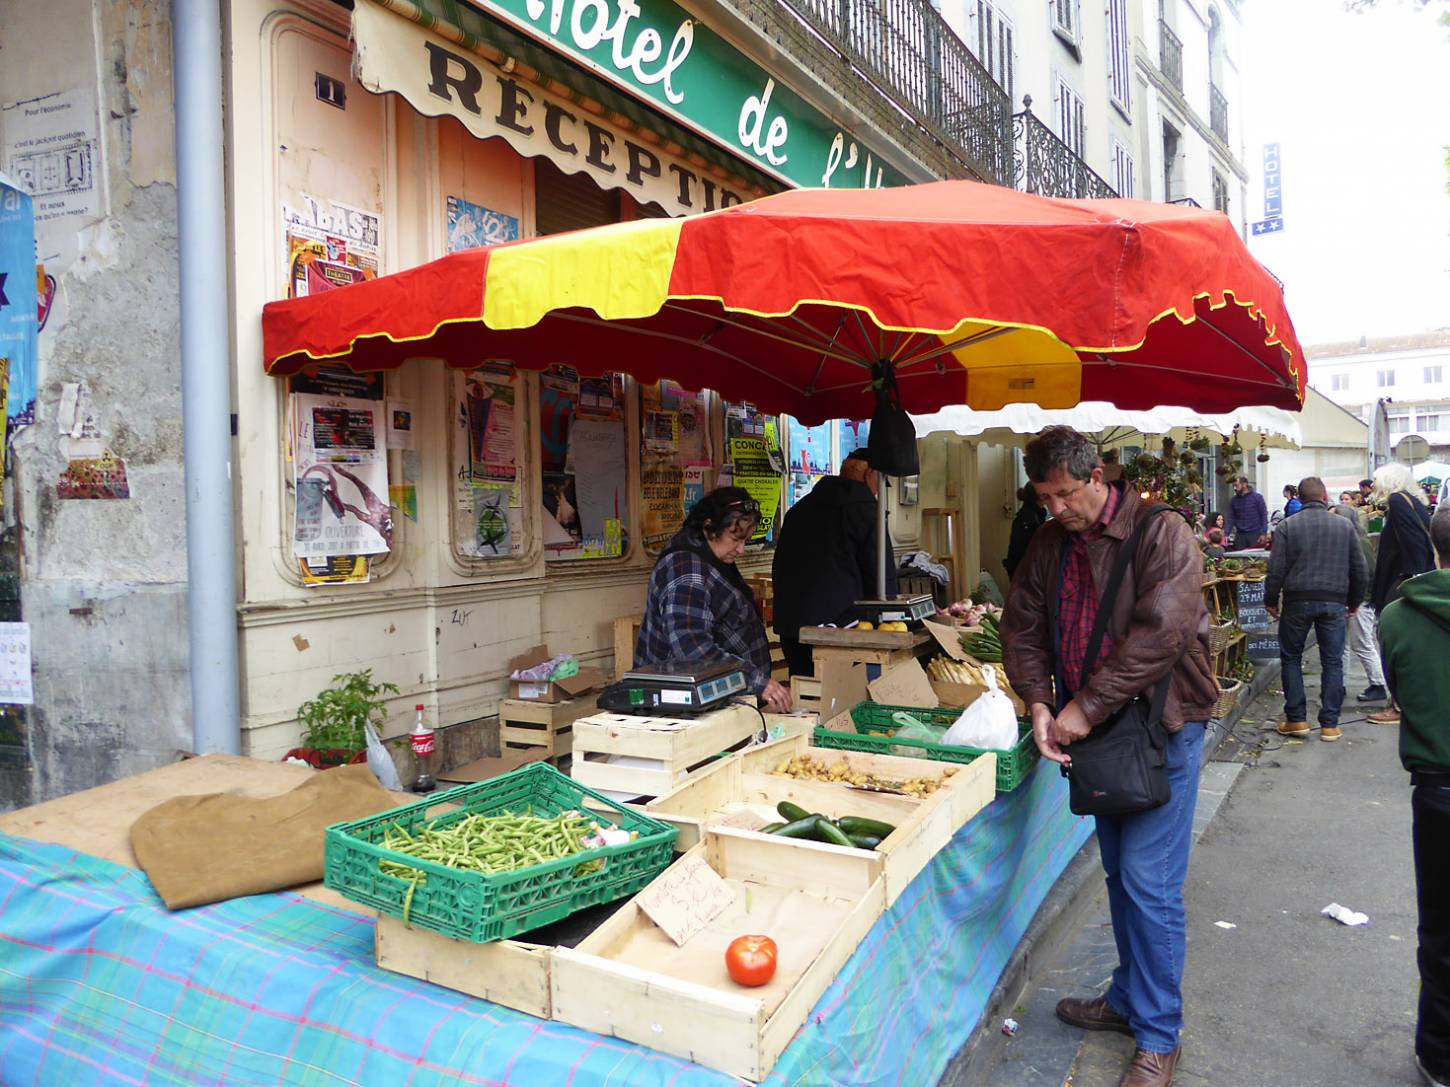 St. Girons market, France, May '17 - 11:56am&nbsp;20<sup>th</sup>&nbsp;May.&nbsp;'17